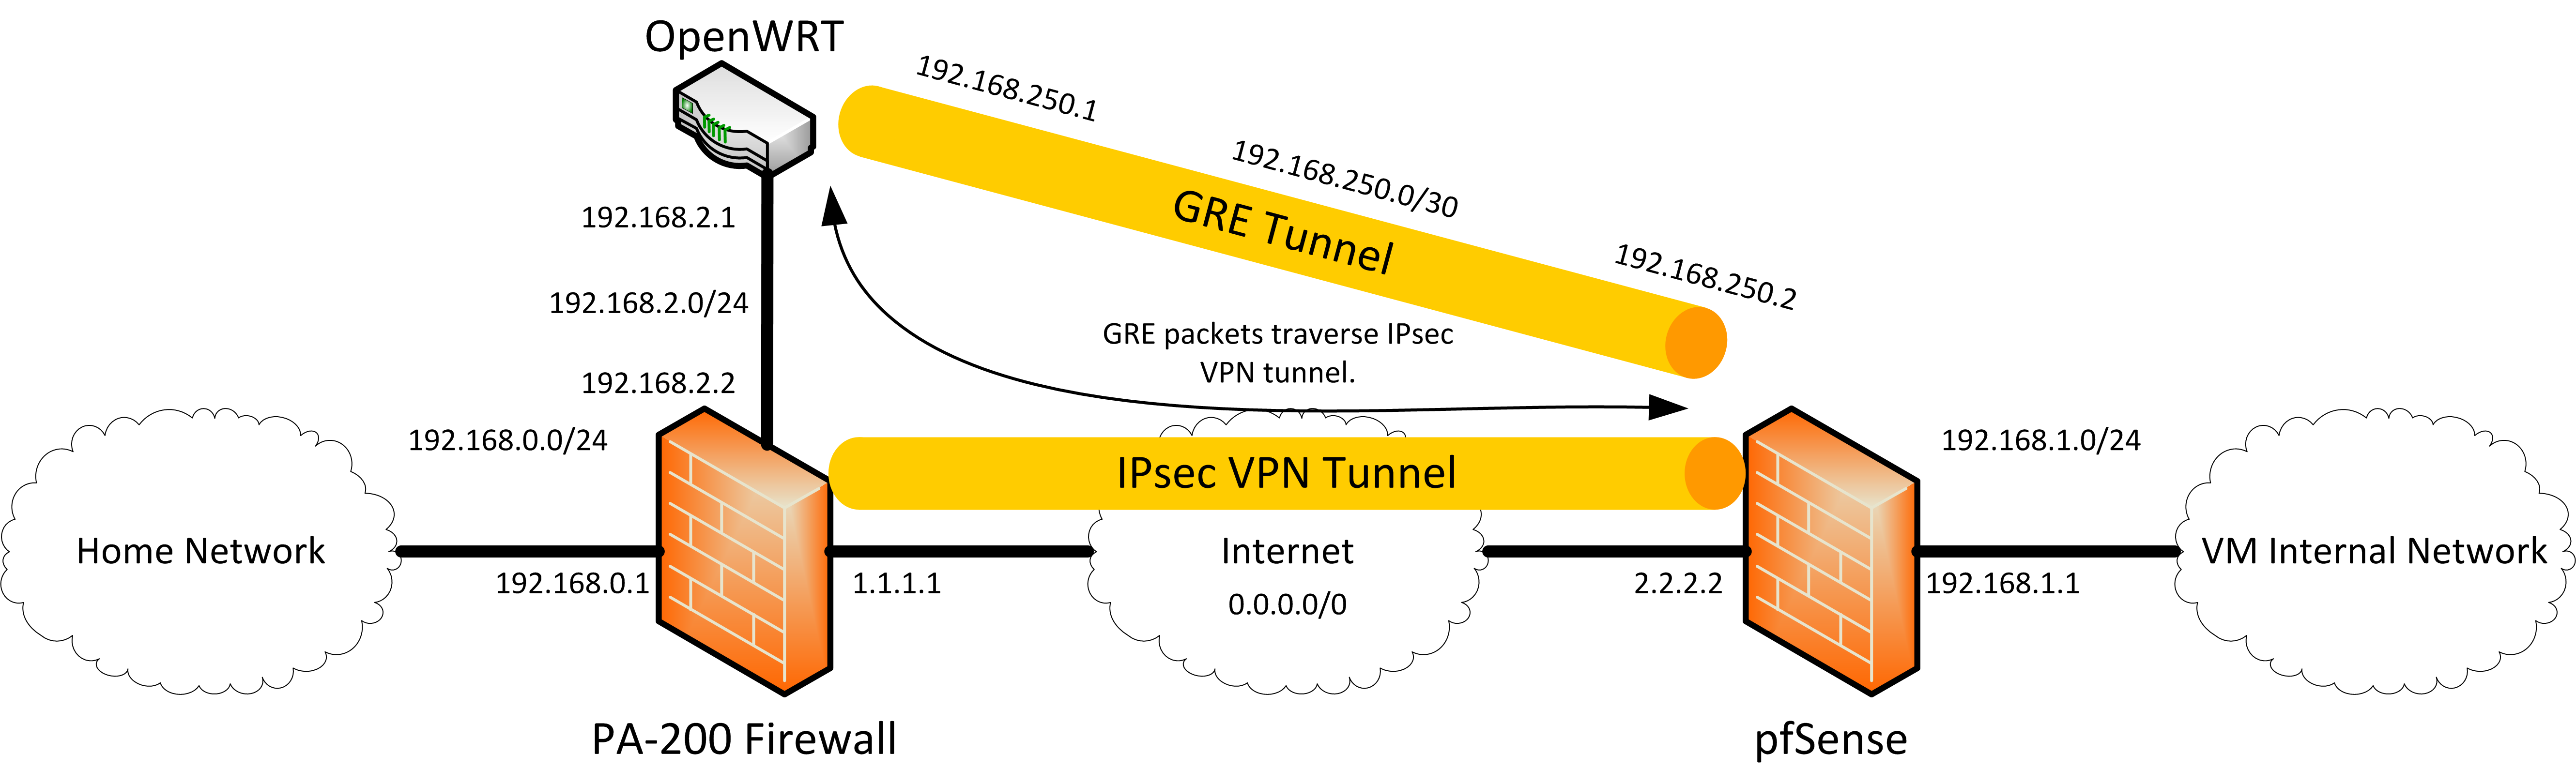 Creating a GRE Tunnel Between OpenWRT and pfSense